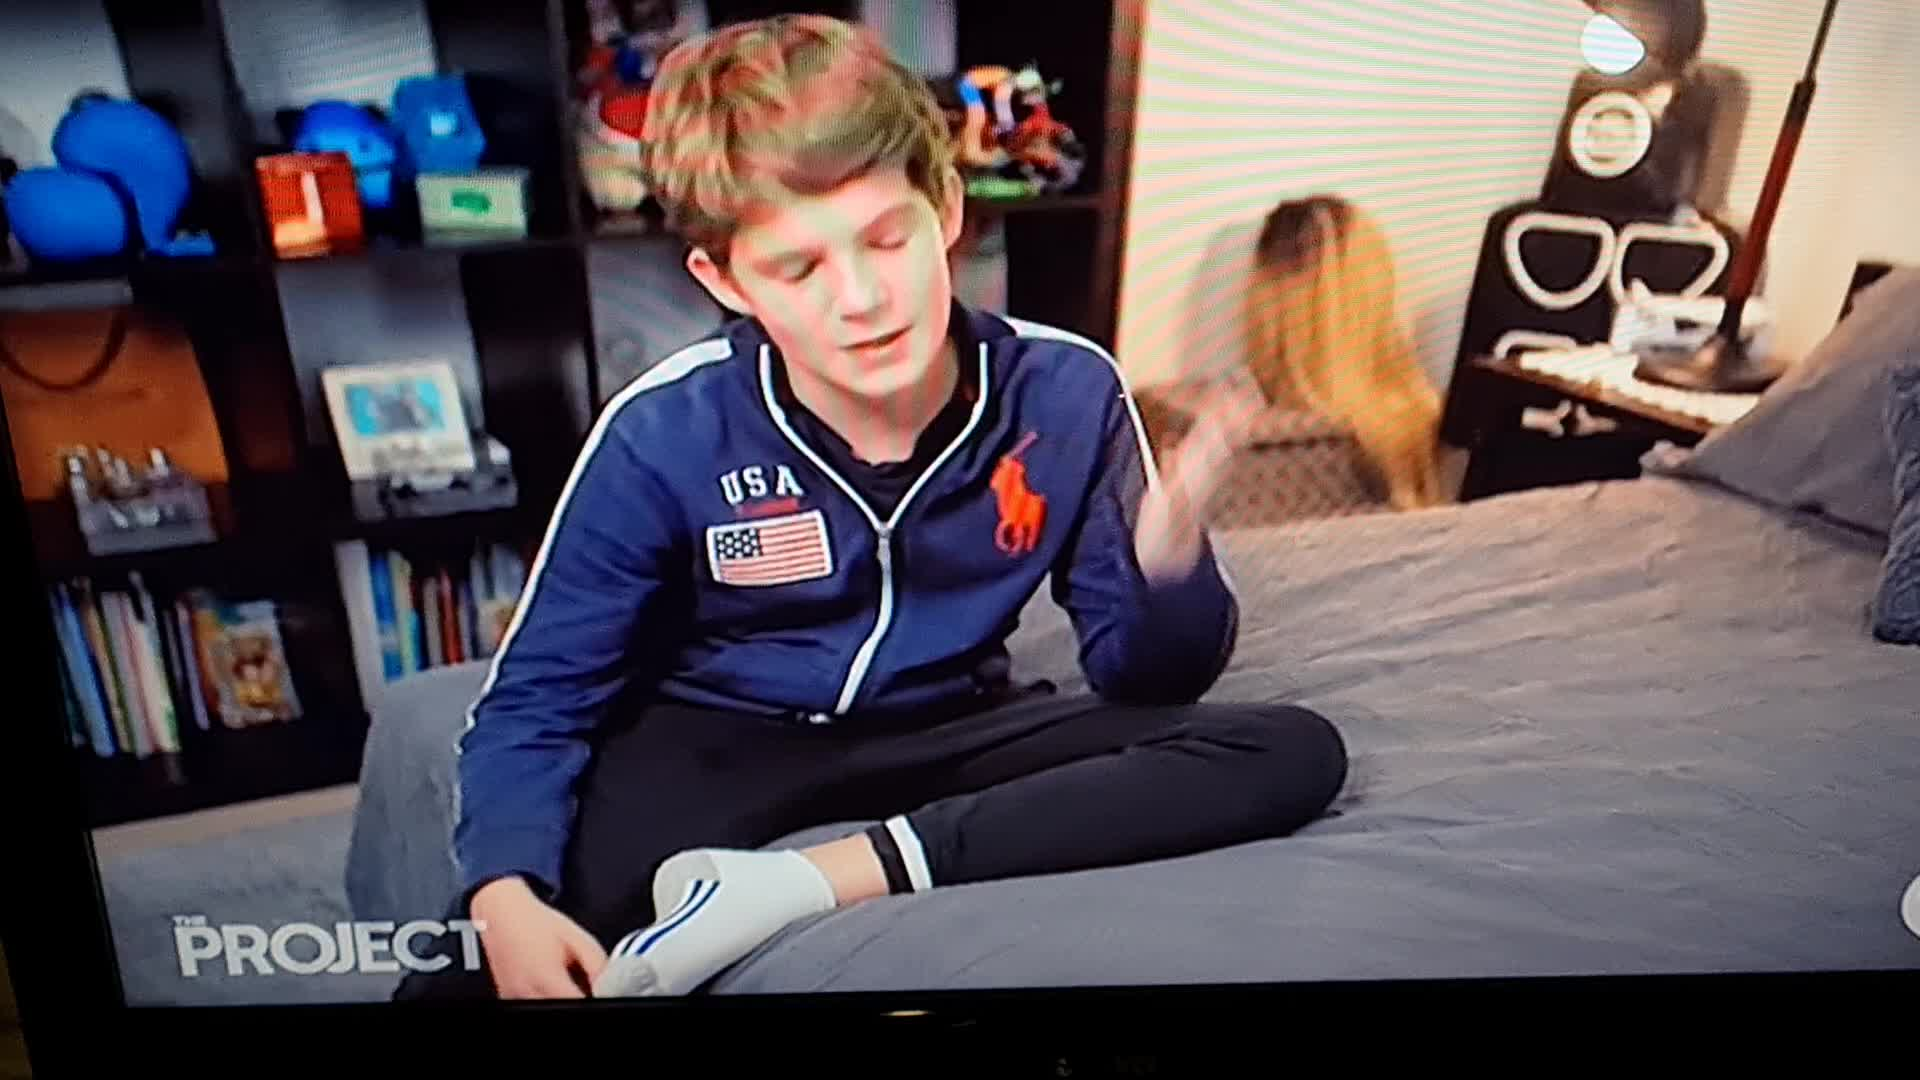 Promo piece on Aussie tv last night for movie about drag nights starring a young boy. He was 12 at the time of filming. Sick pedos watching.